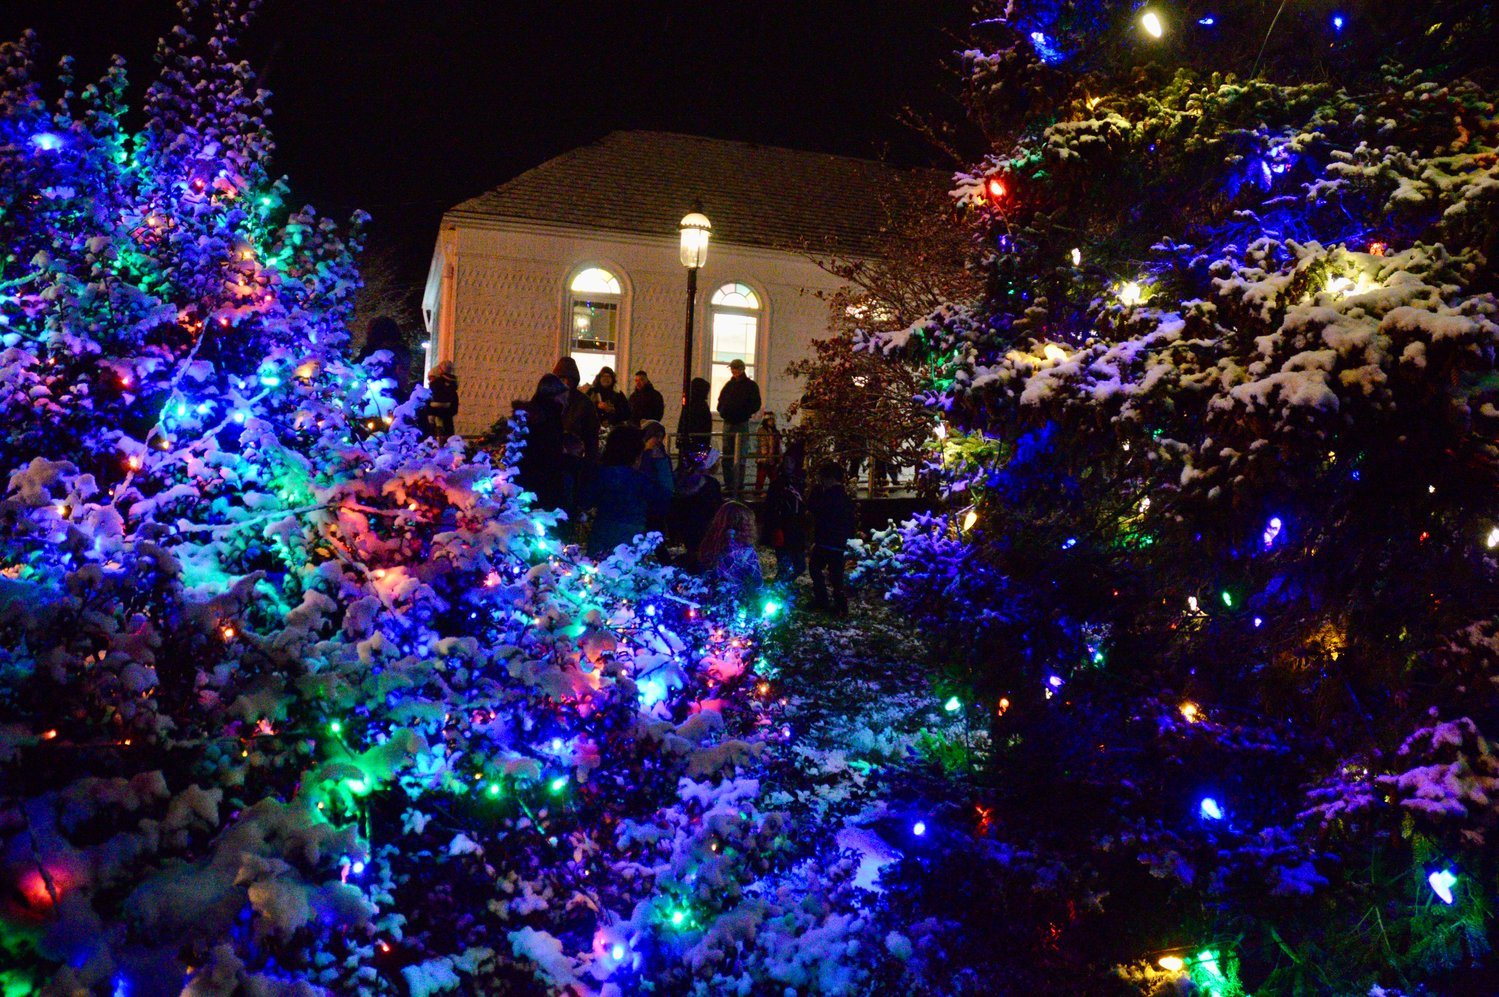 The library's Christmas tree and a large bush are aglow with Christmas lights as families make their way inside the building for more revelry.